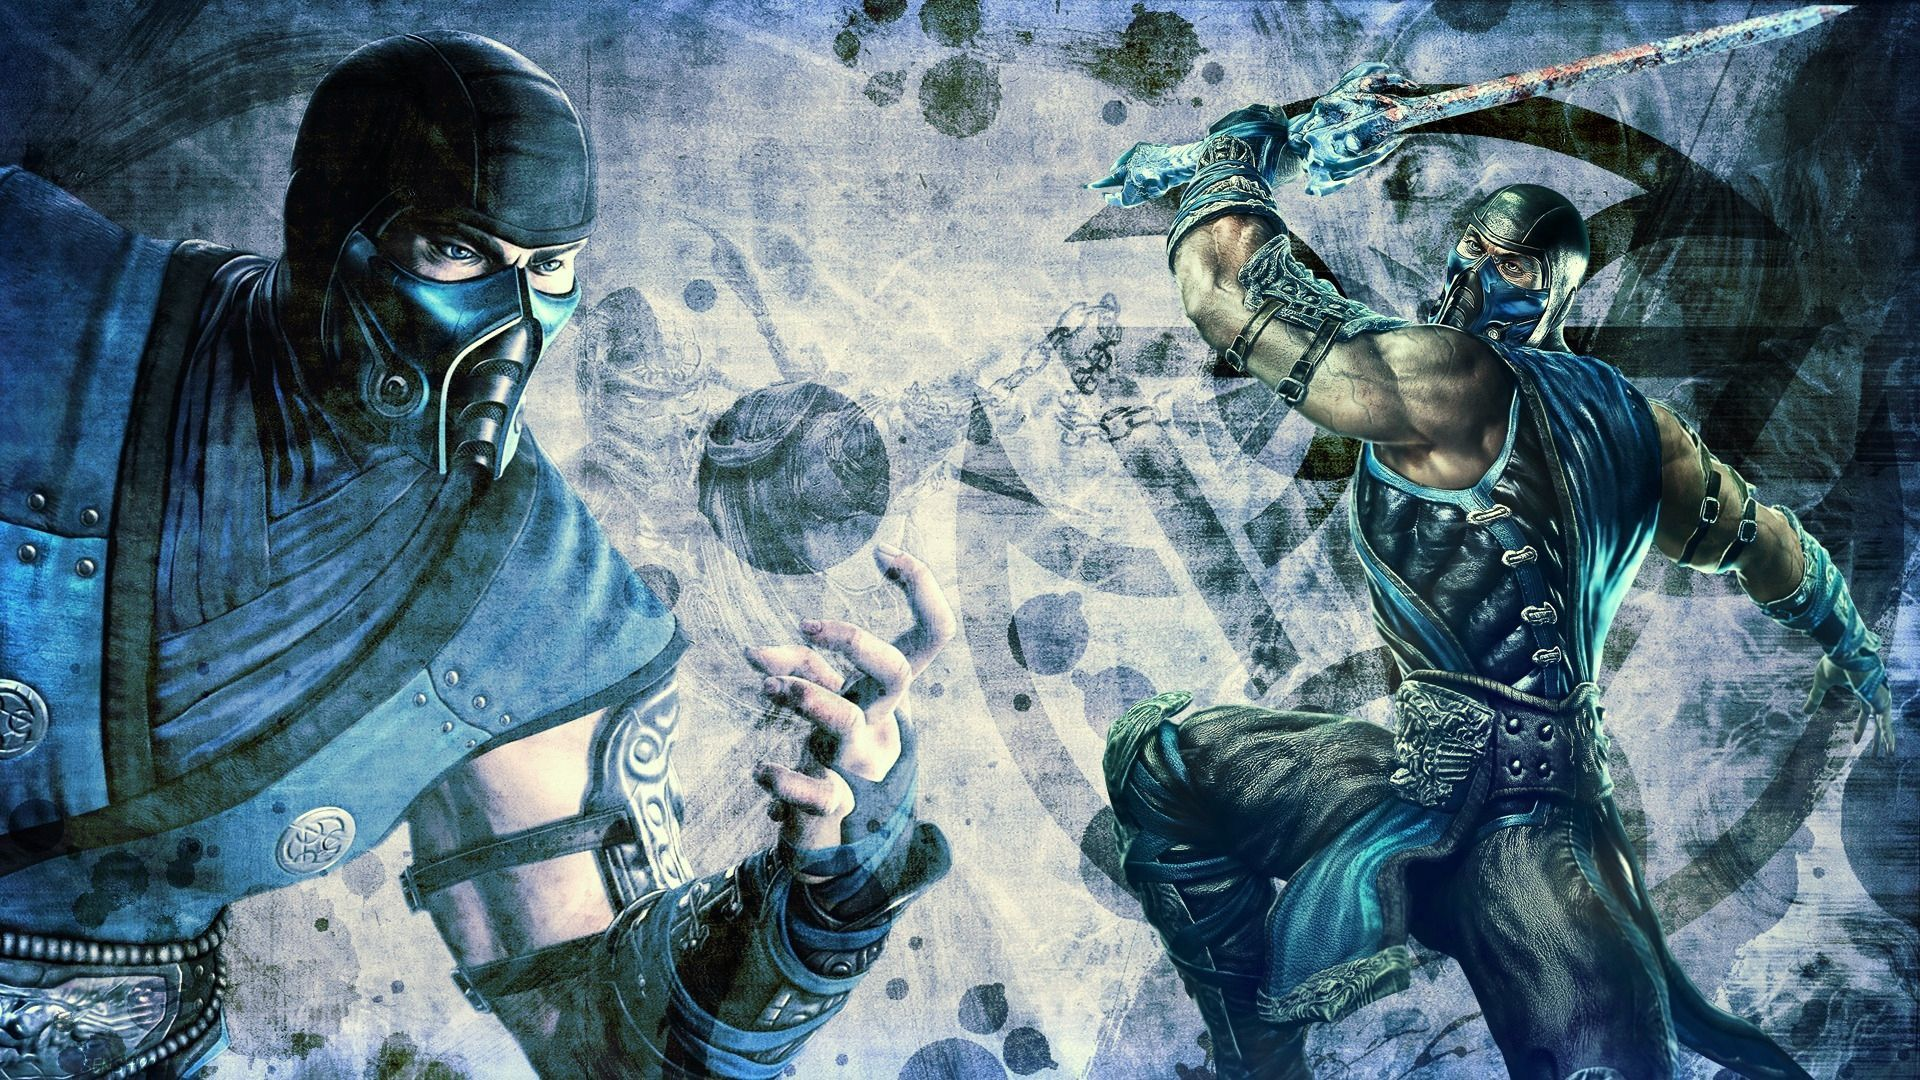 Mortal Kombat Wallpaper Sub Zero 187 Mortal Kombat Games Fan Site